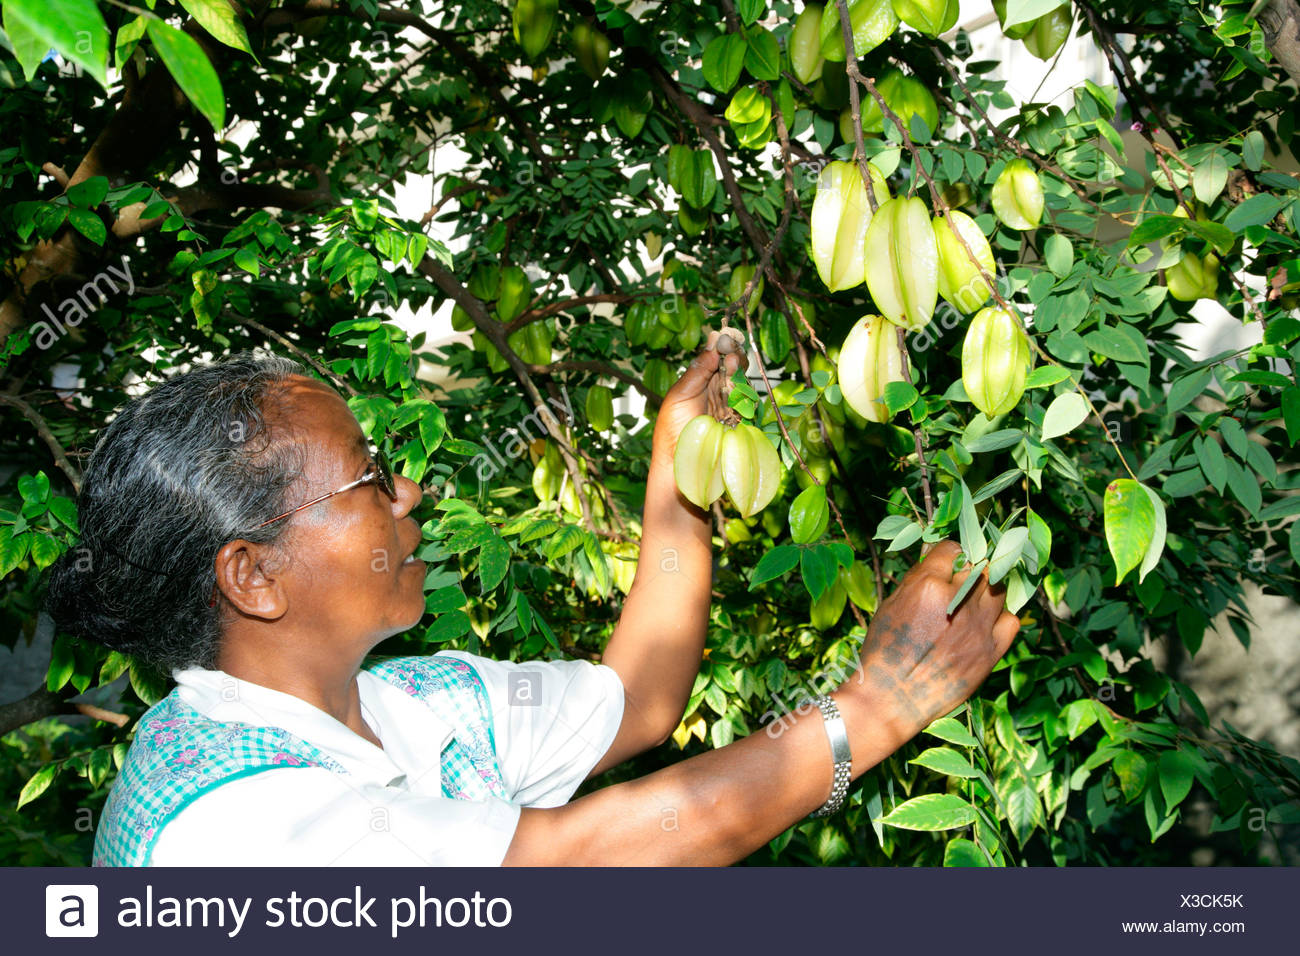 Woman harvesting starfruit (Averrhoa carambola) at an Ursuline convent and orphanage in Georgetown, Guyana, South America Stock Photo